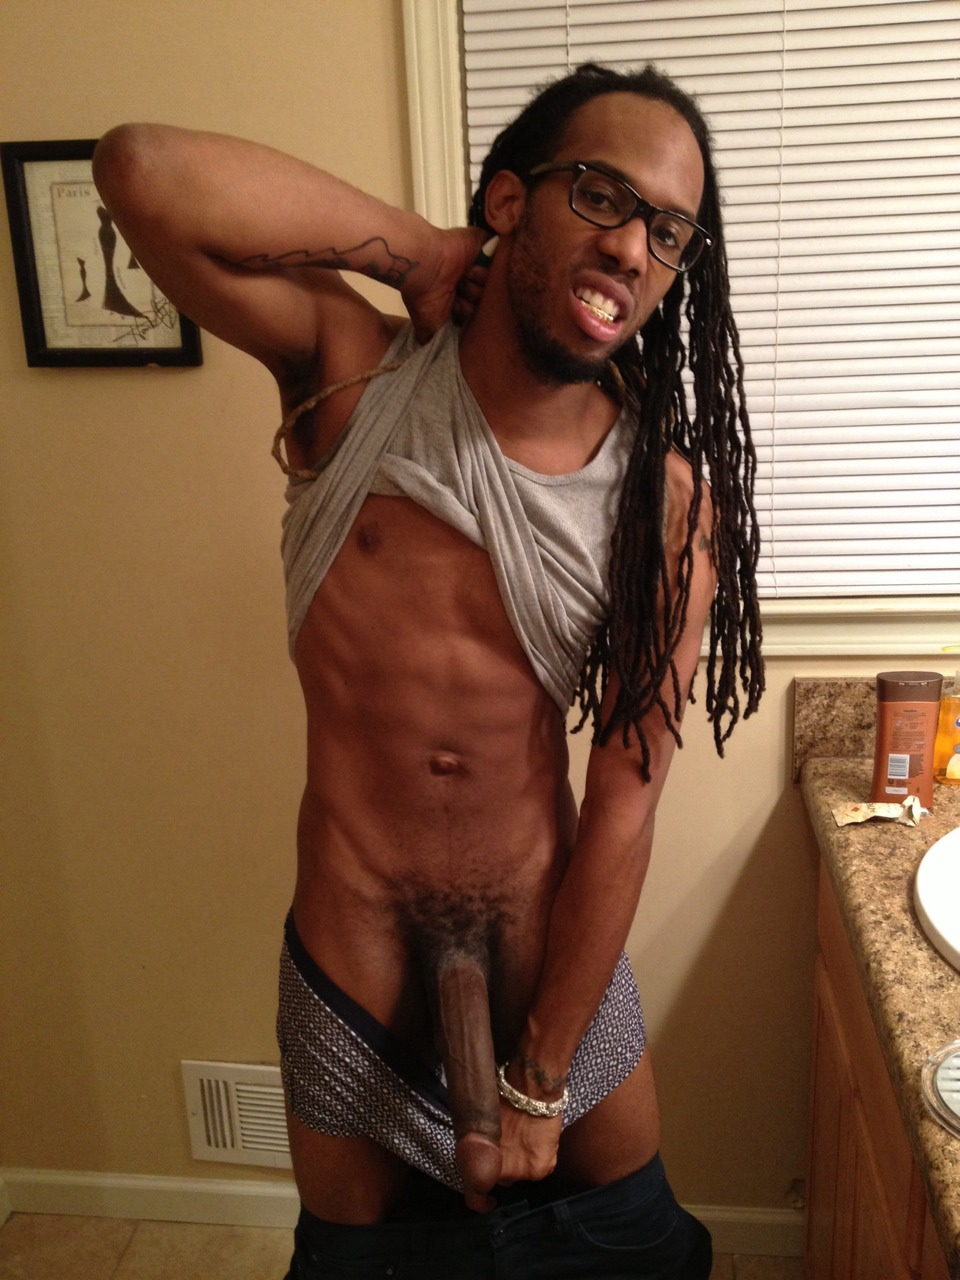 Naked men with dreadlocks